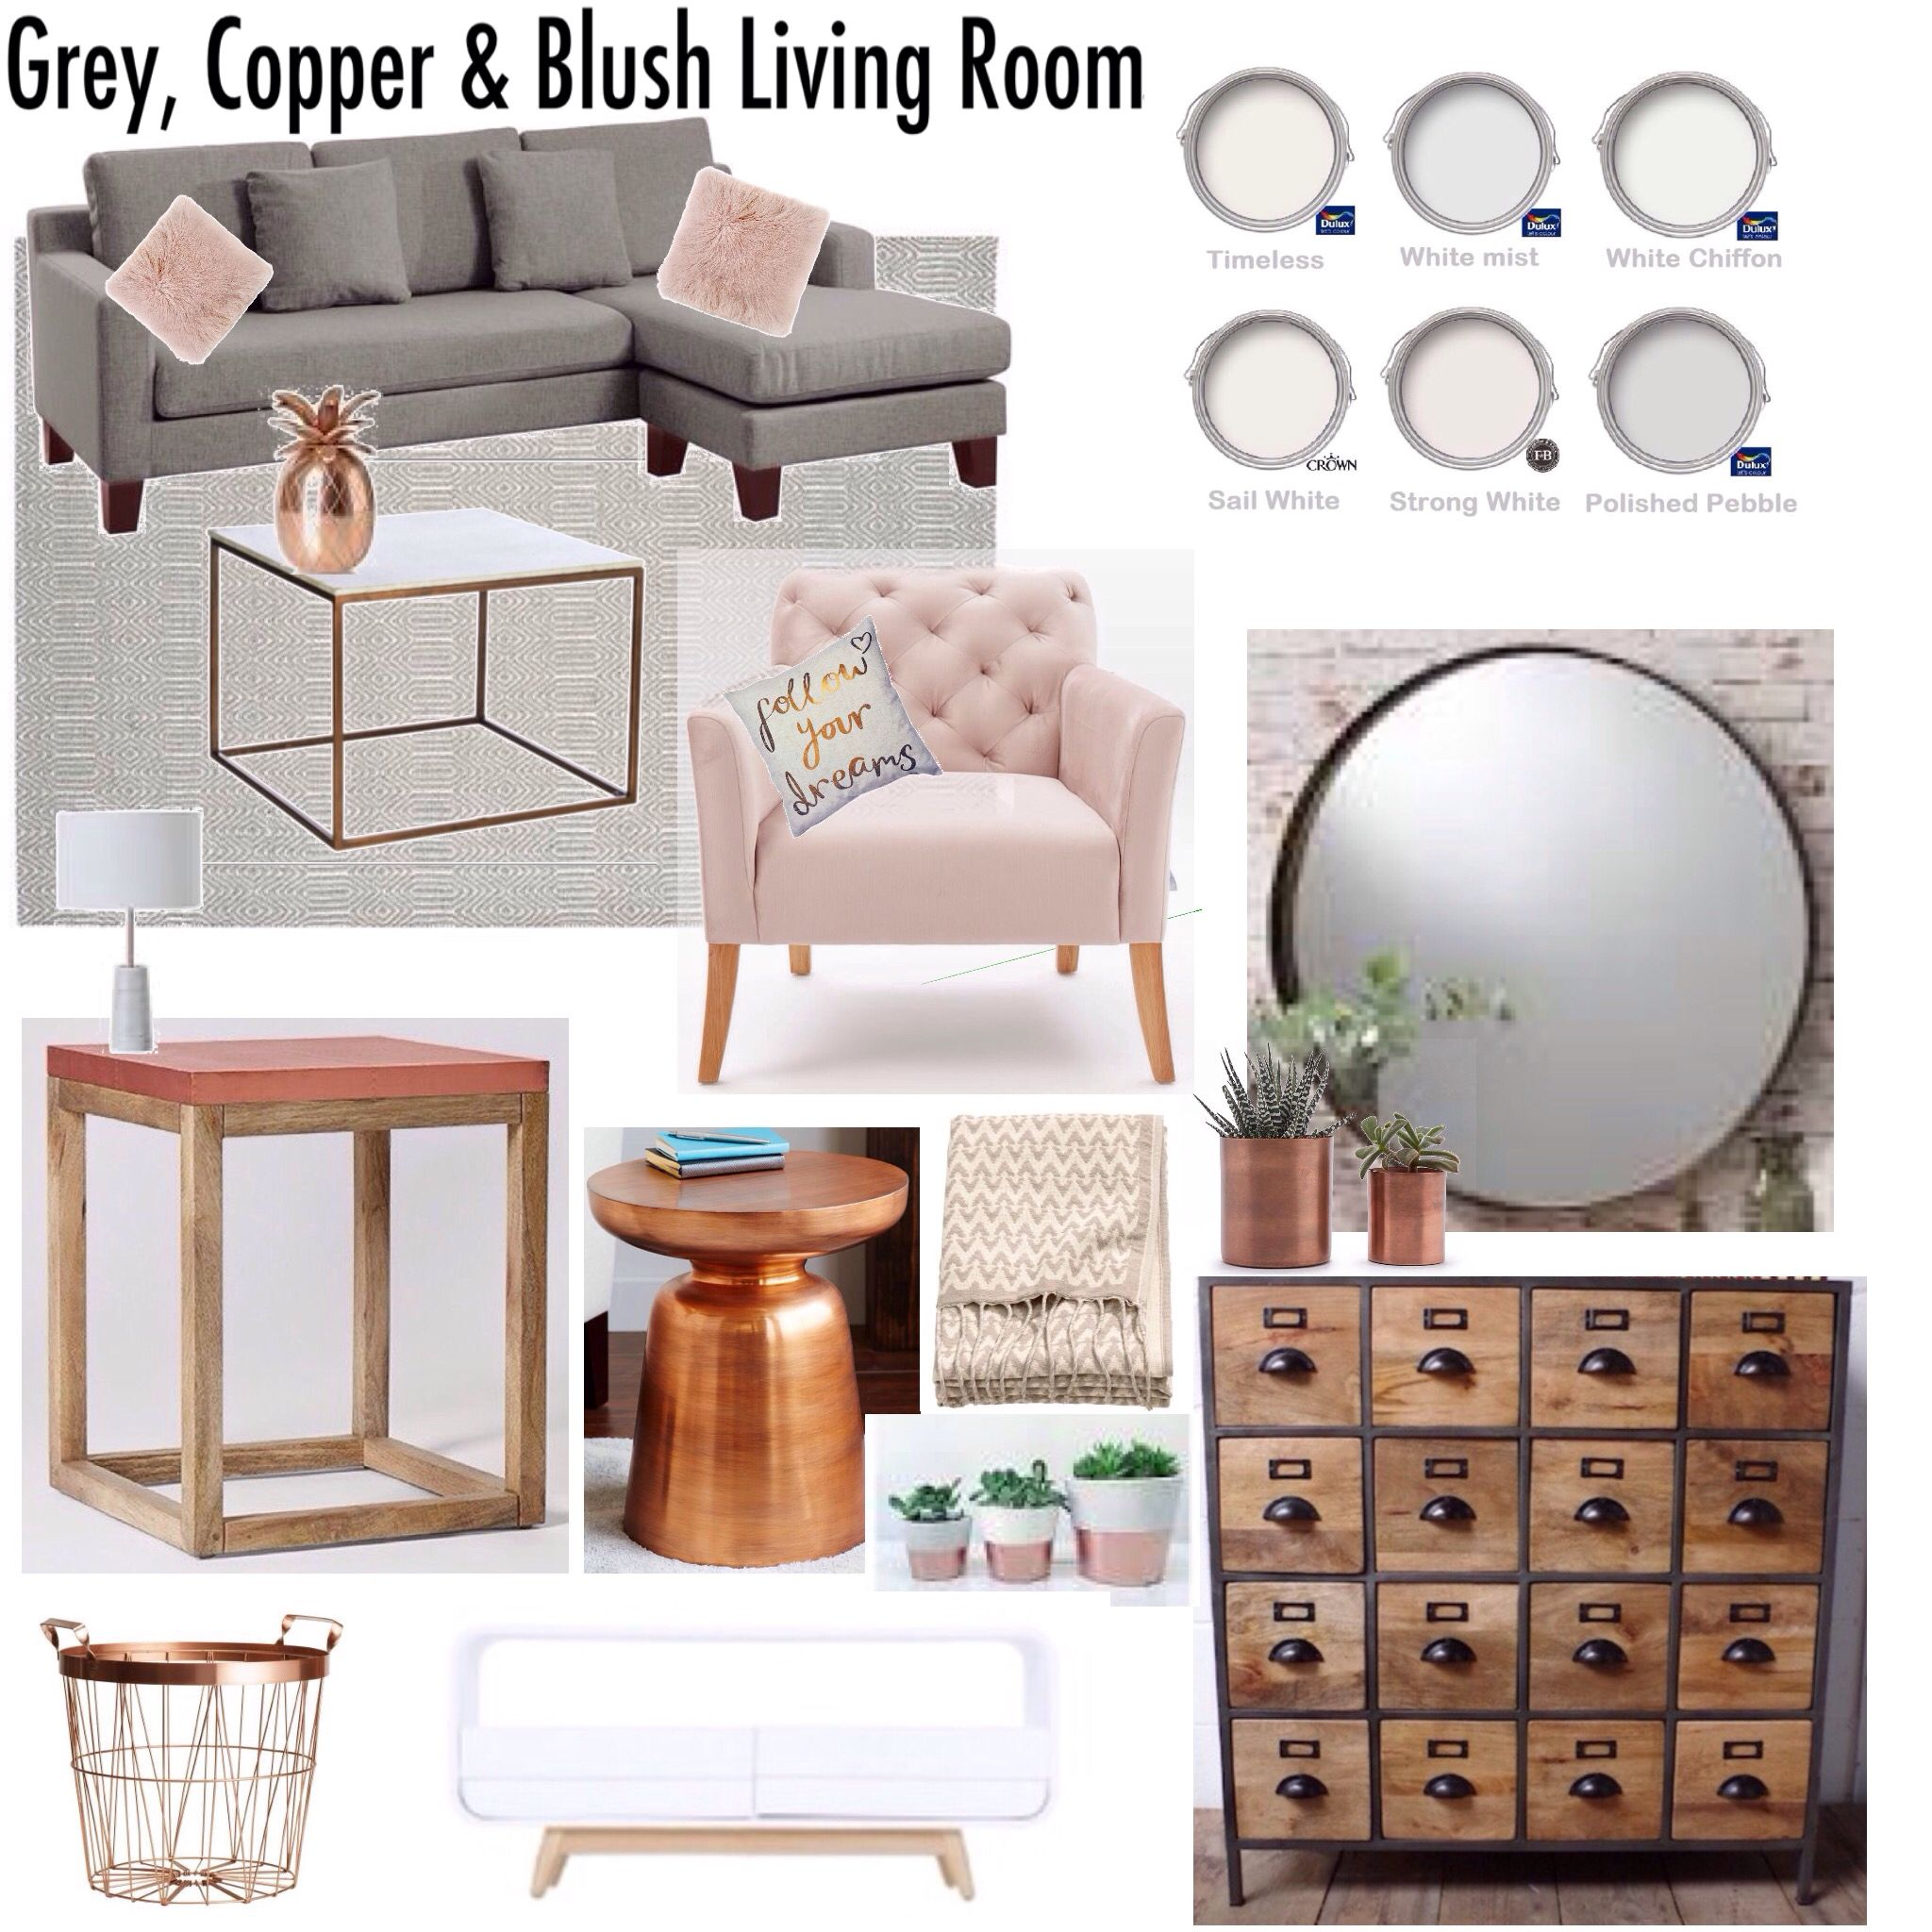 gray copper blush living room decor mood board ideas crate and barrel marilyn accent table drop leaf kitchen set hammered brass side west elm replacement lamp shades ships lantern